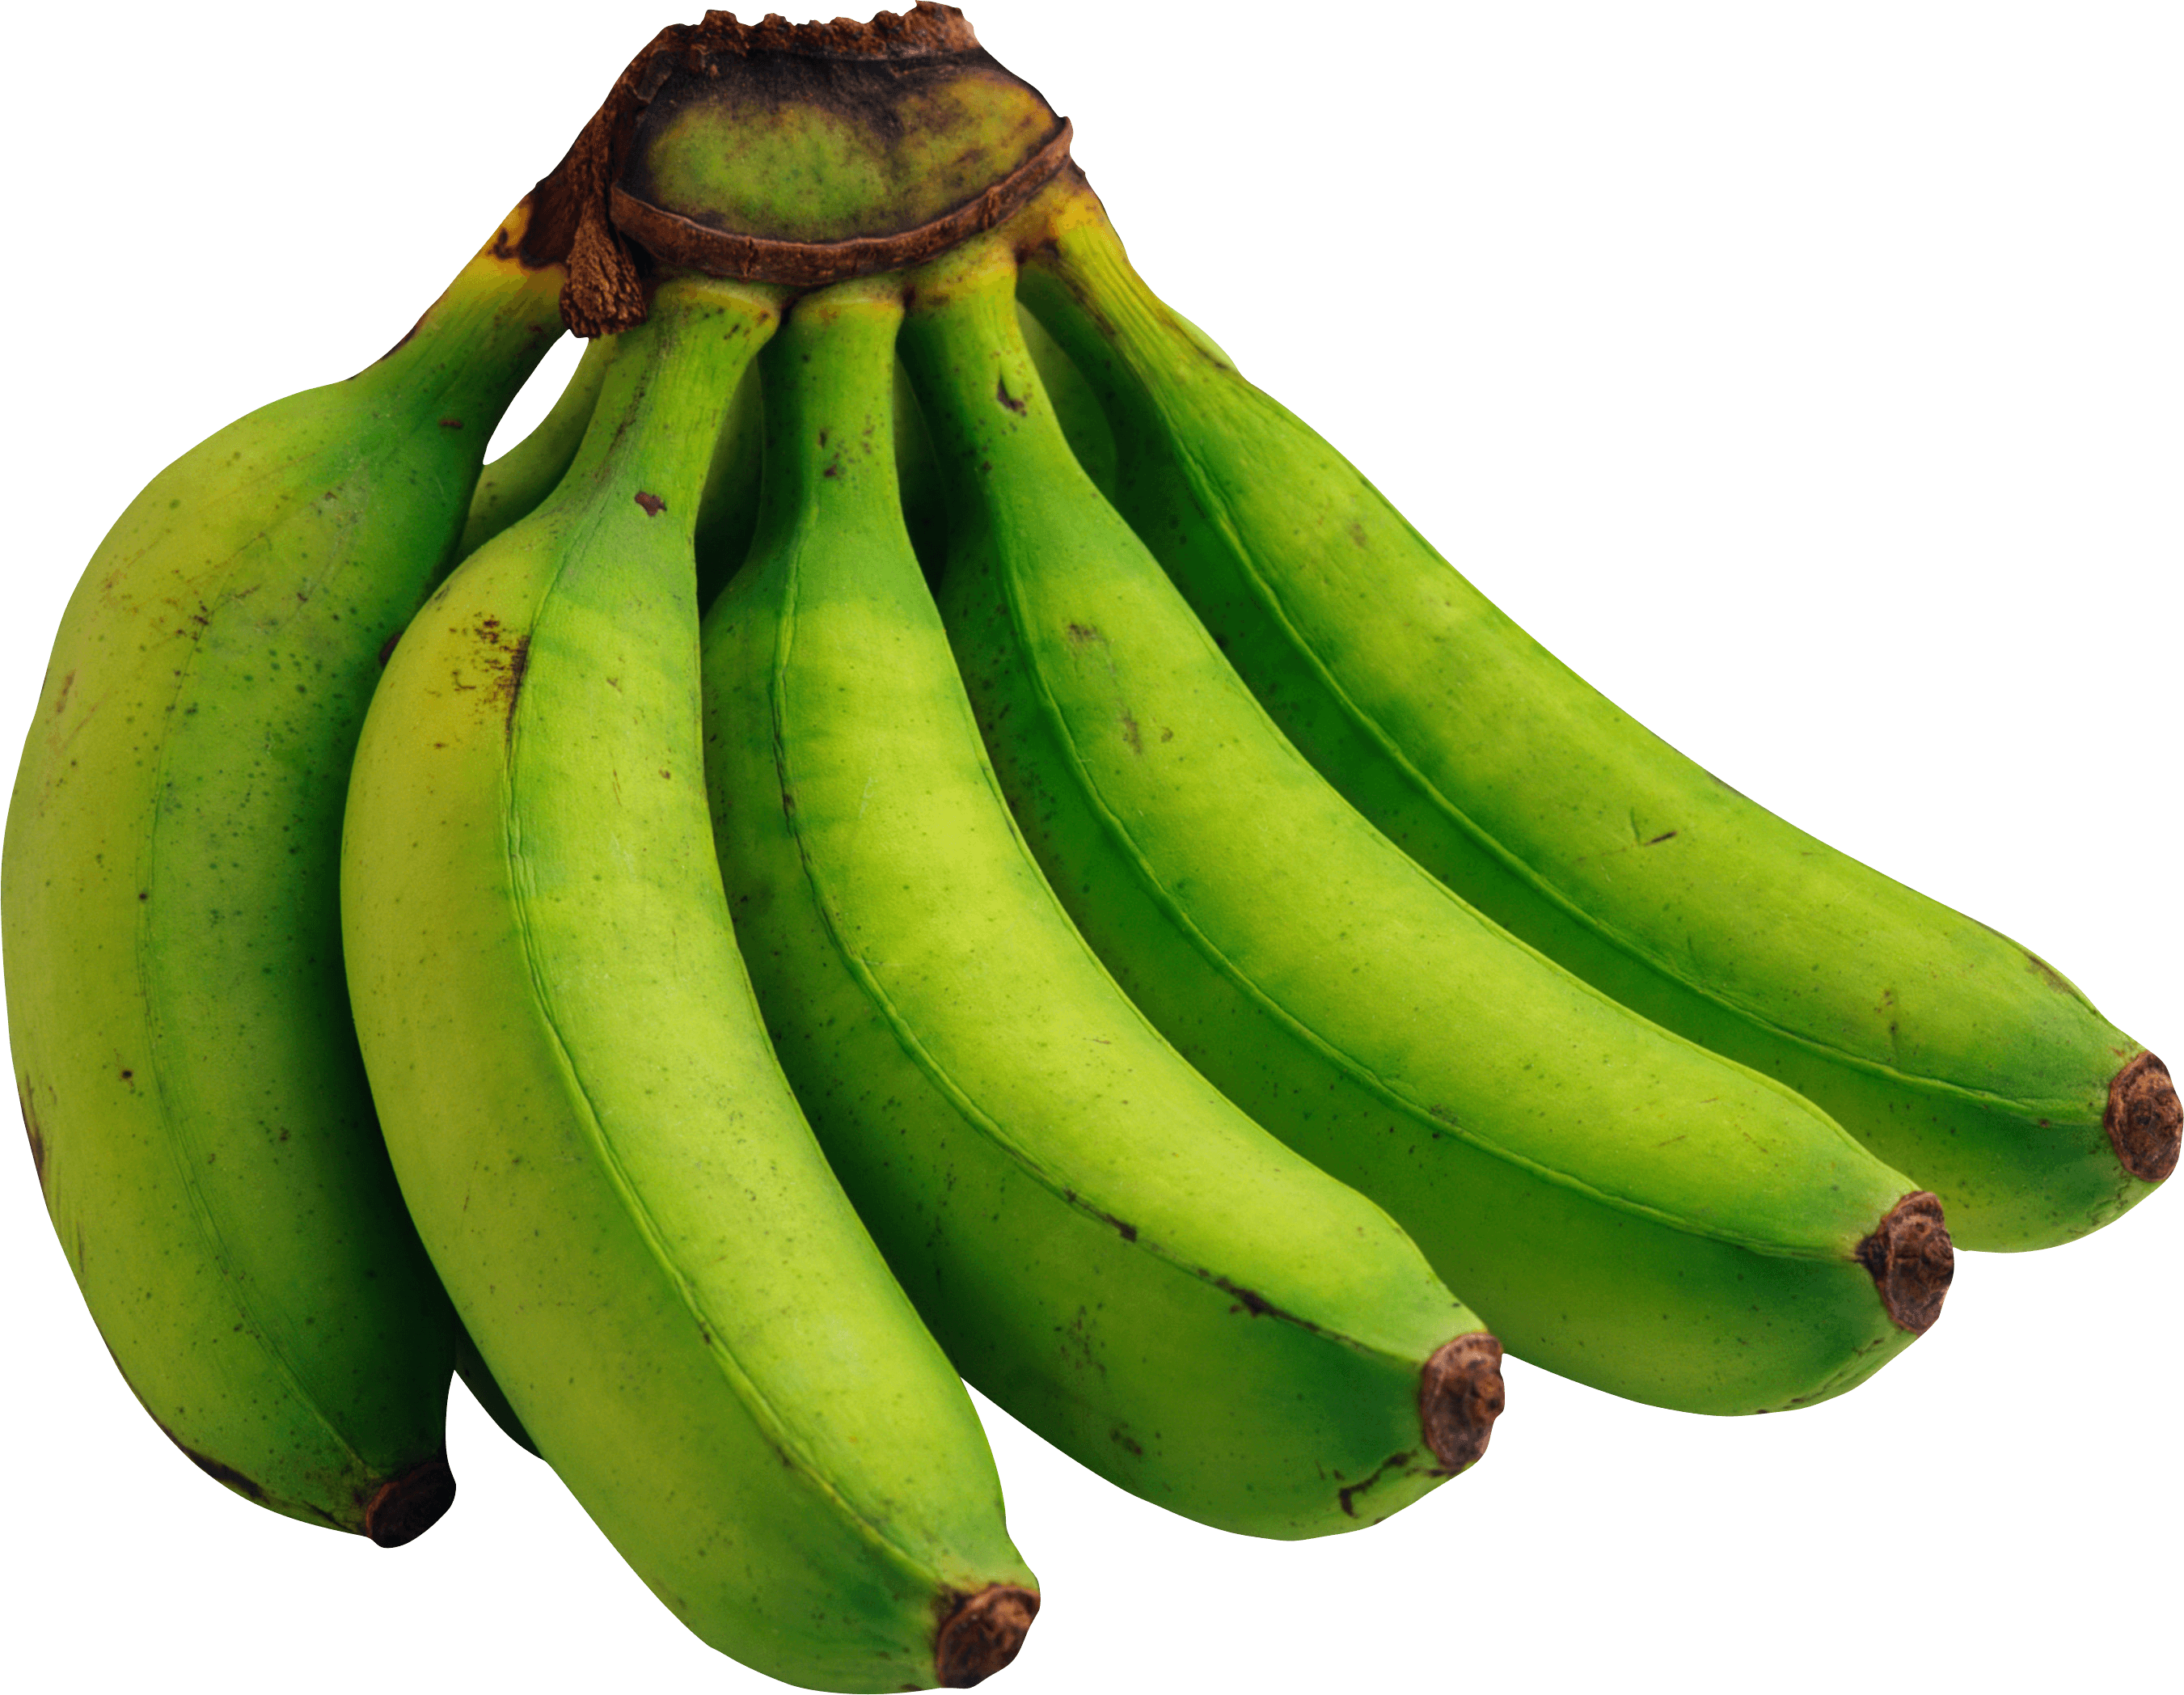 Green Bananas Png Image Picture PNG Image